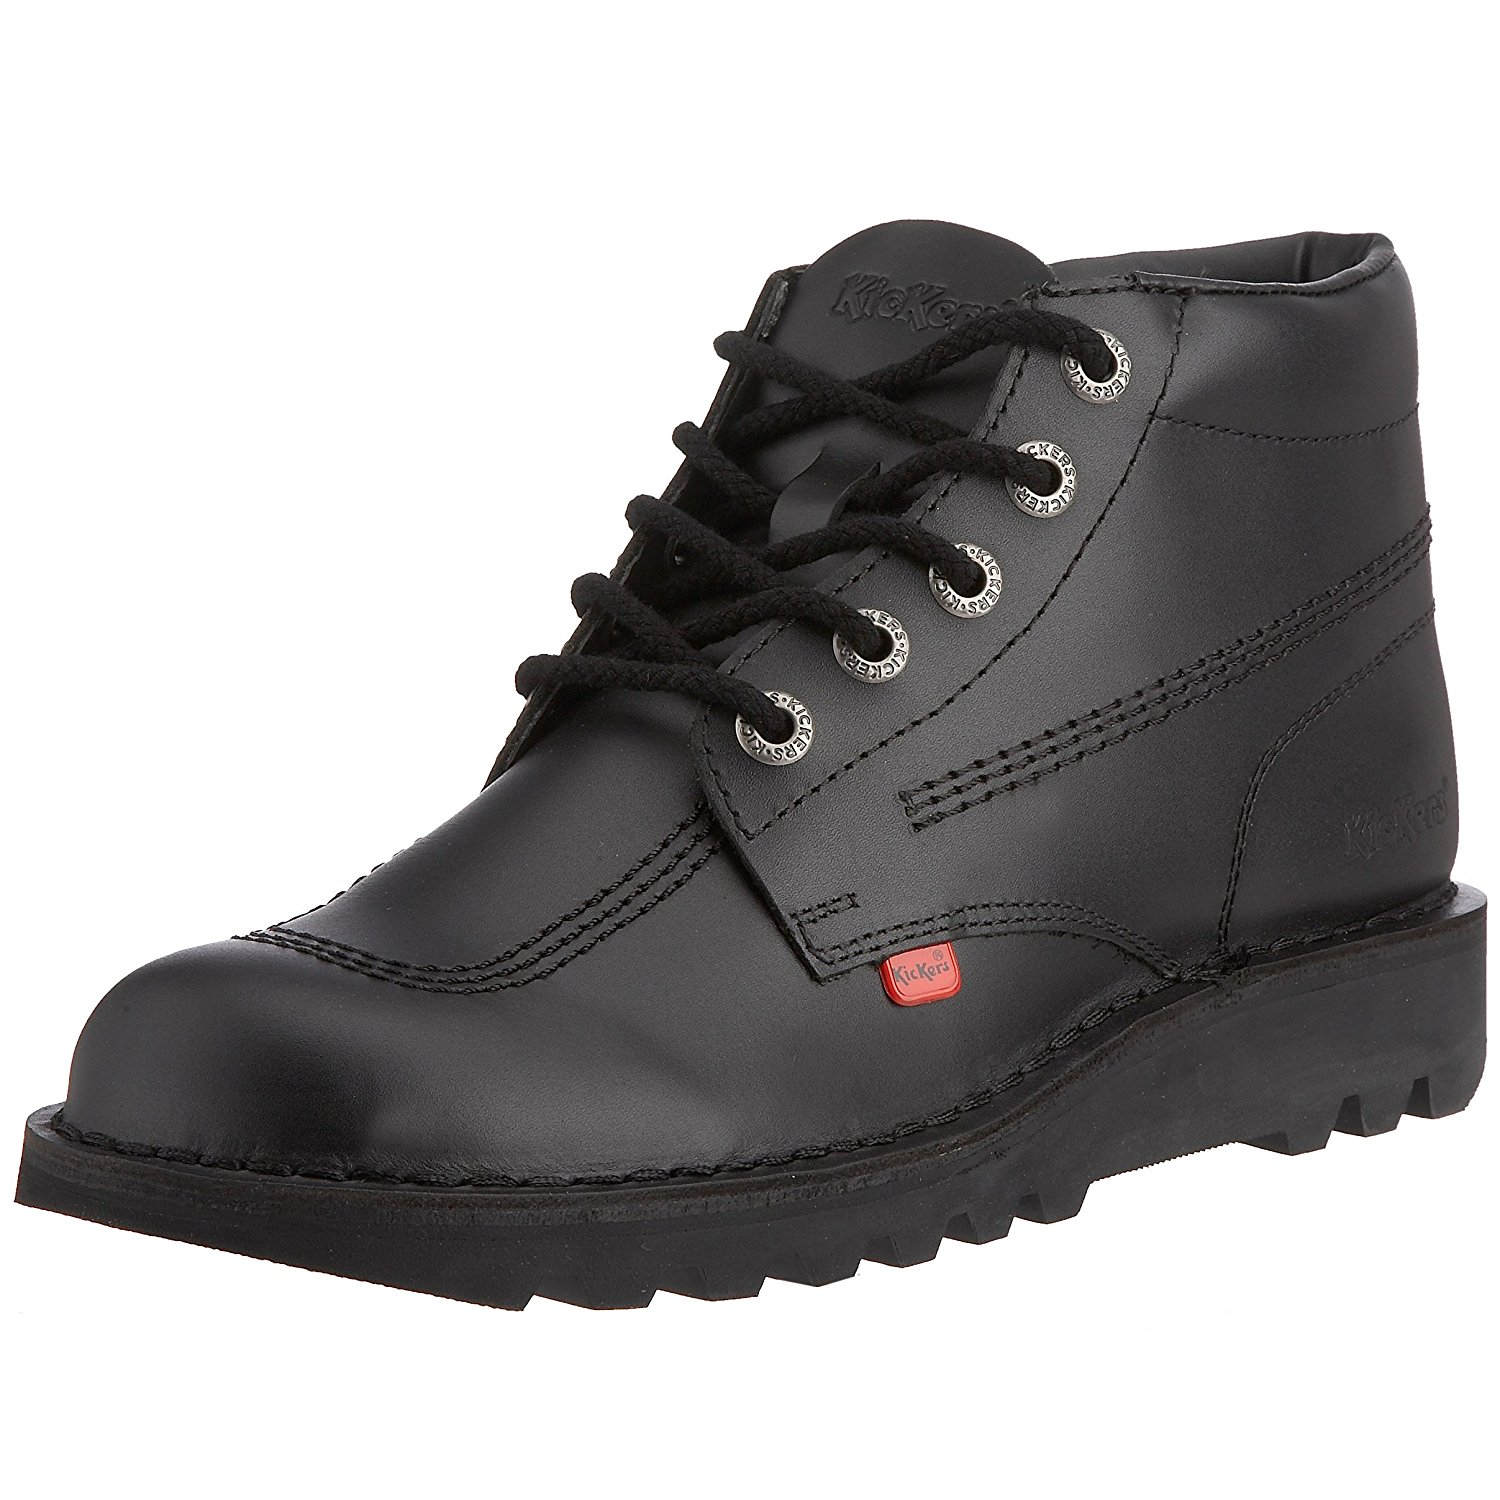 66c320a20 Buy M1 Kickers Kick Hi Boys Girls School Leather Lace Up Ankle Boots ...